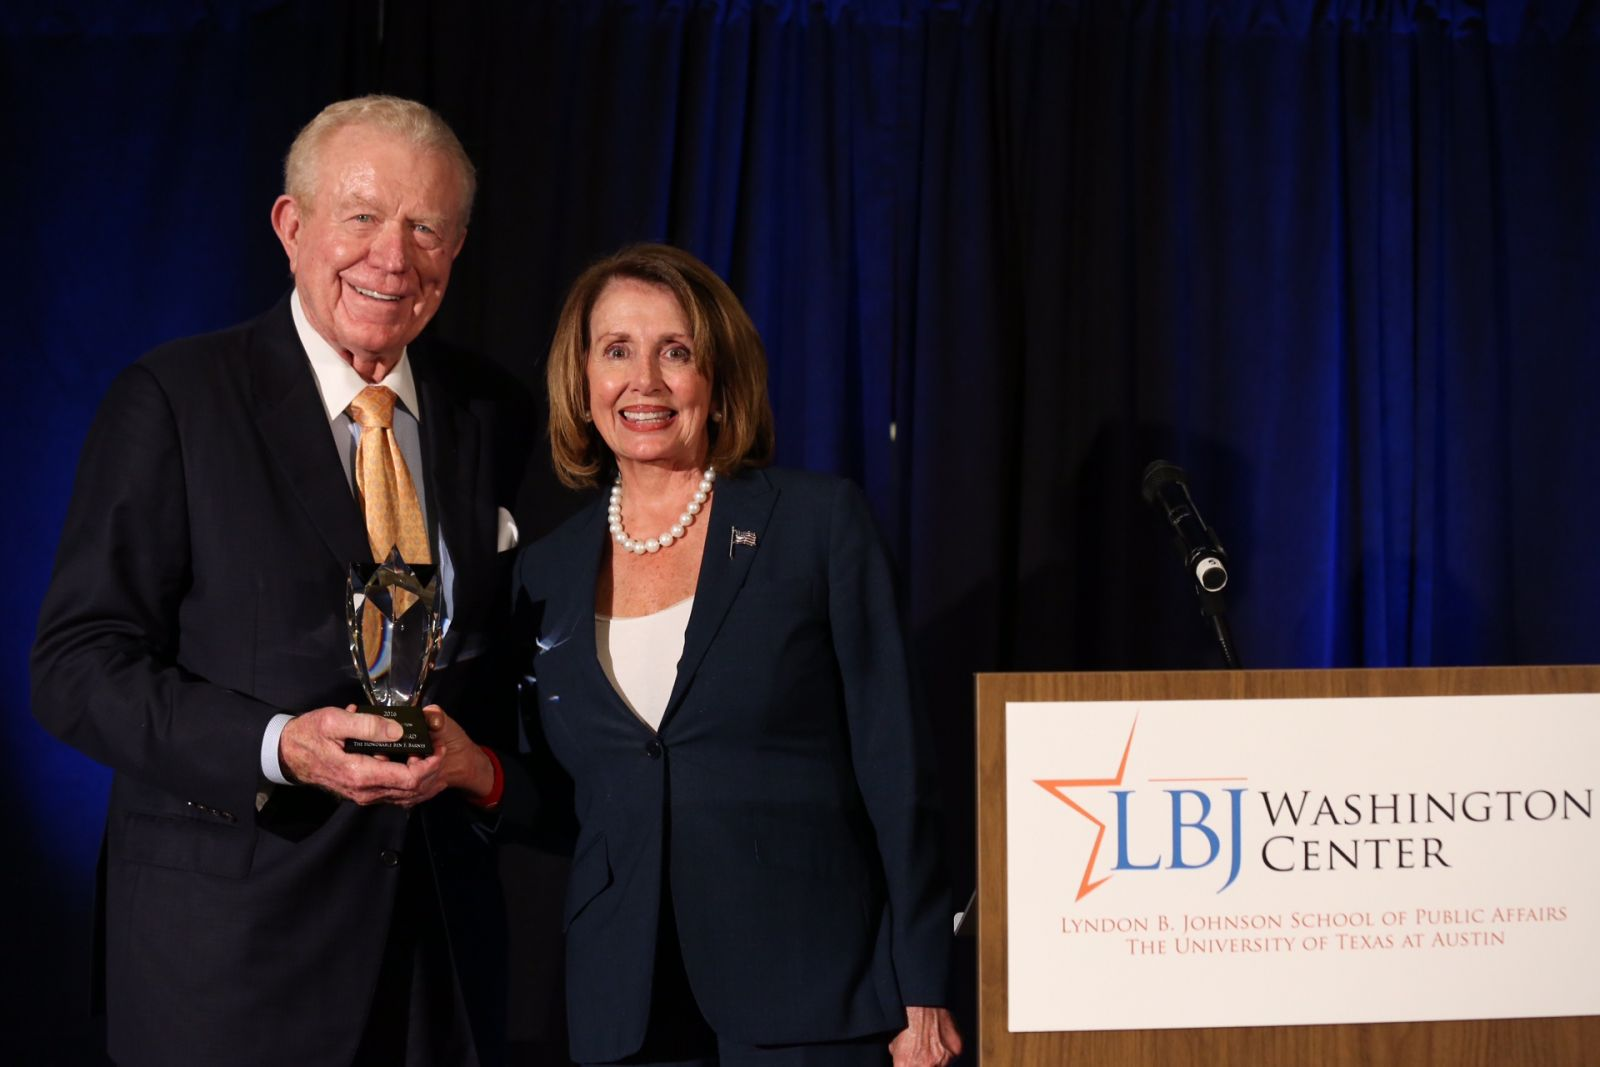 Minority Leader Nancy Pelosi presents the Founder Award to Ben Barnes, former Lieutenant Governor of Texas